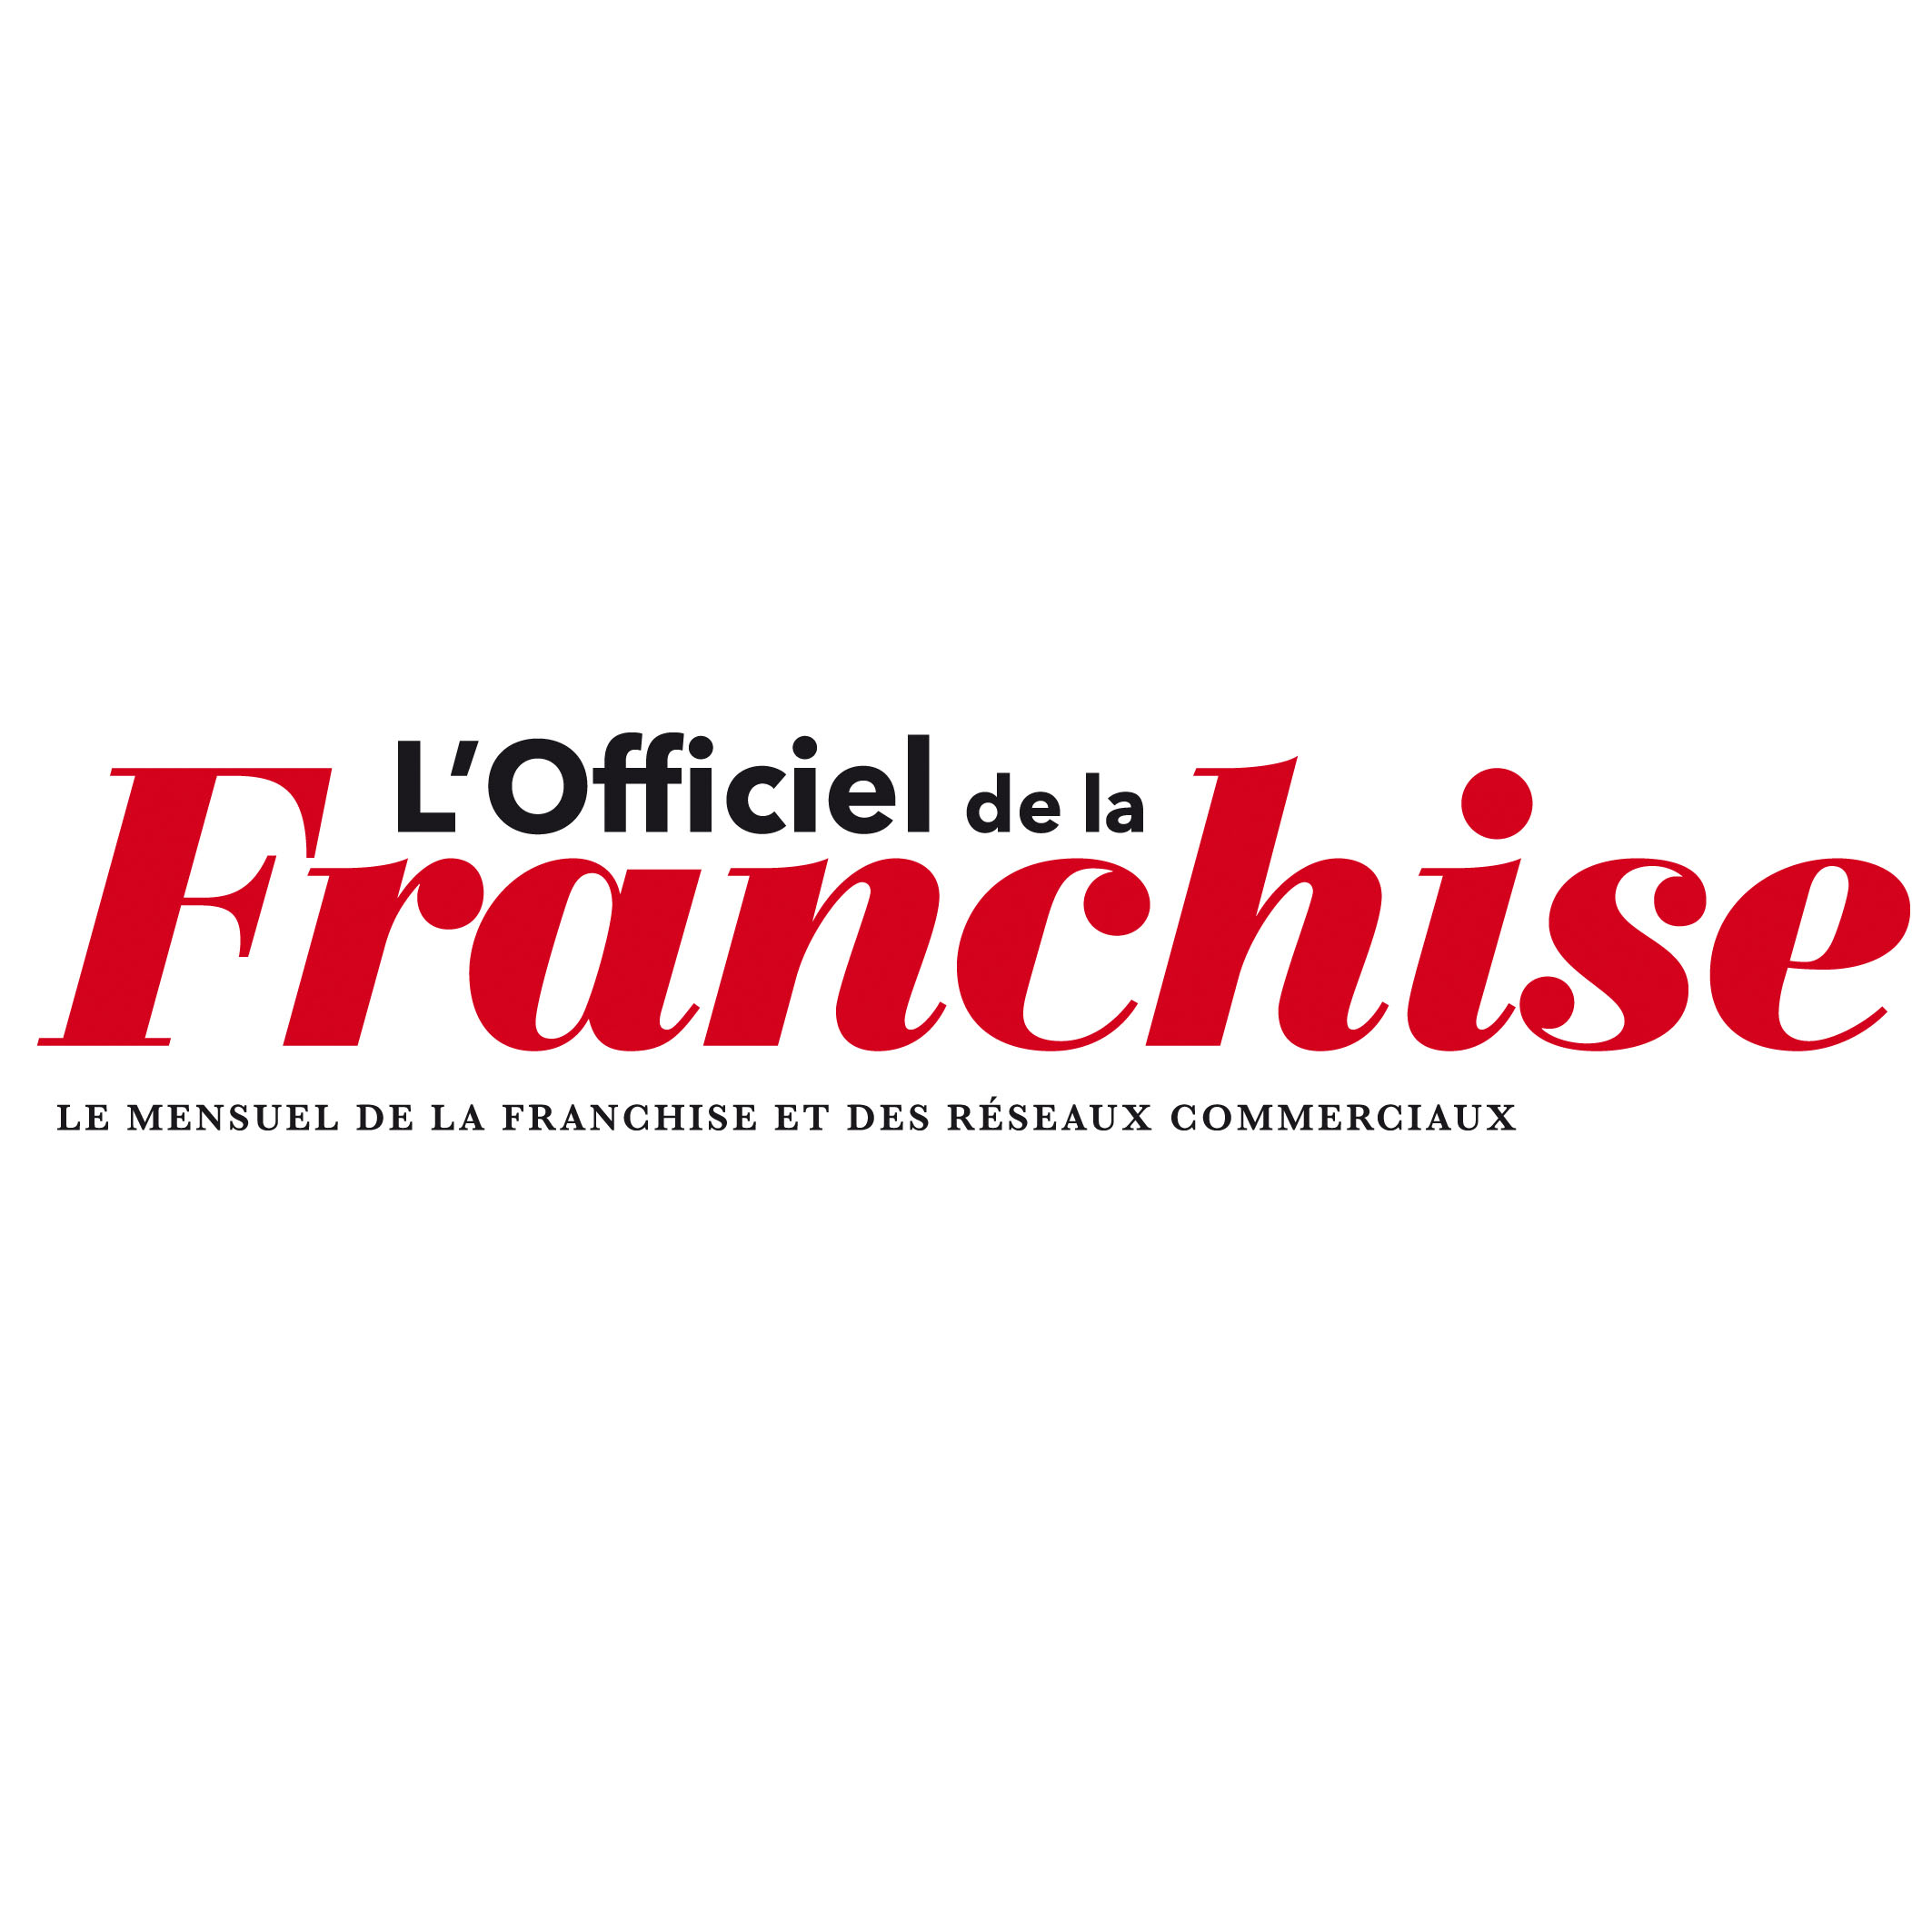 Les clauses de non-réaffiliation (L'officiel de la franchise, mai 2013)